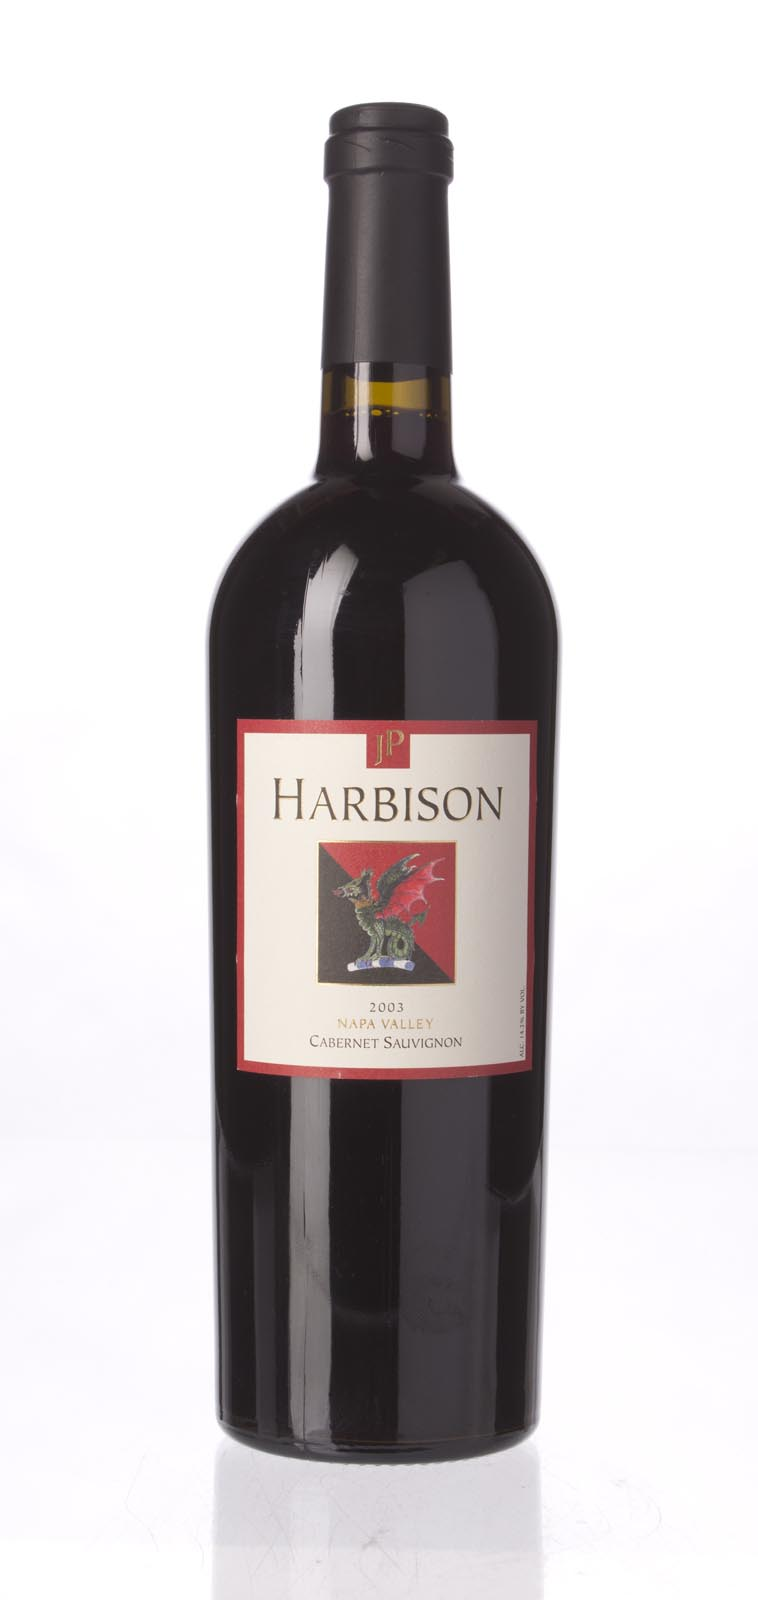 JP Harbison Cabernet Sauvignon Napa Valley 2003, 750mL () from The BPW - Merchants of rare and fine wines.